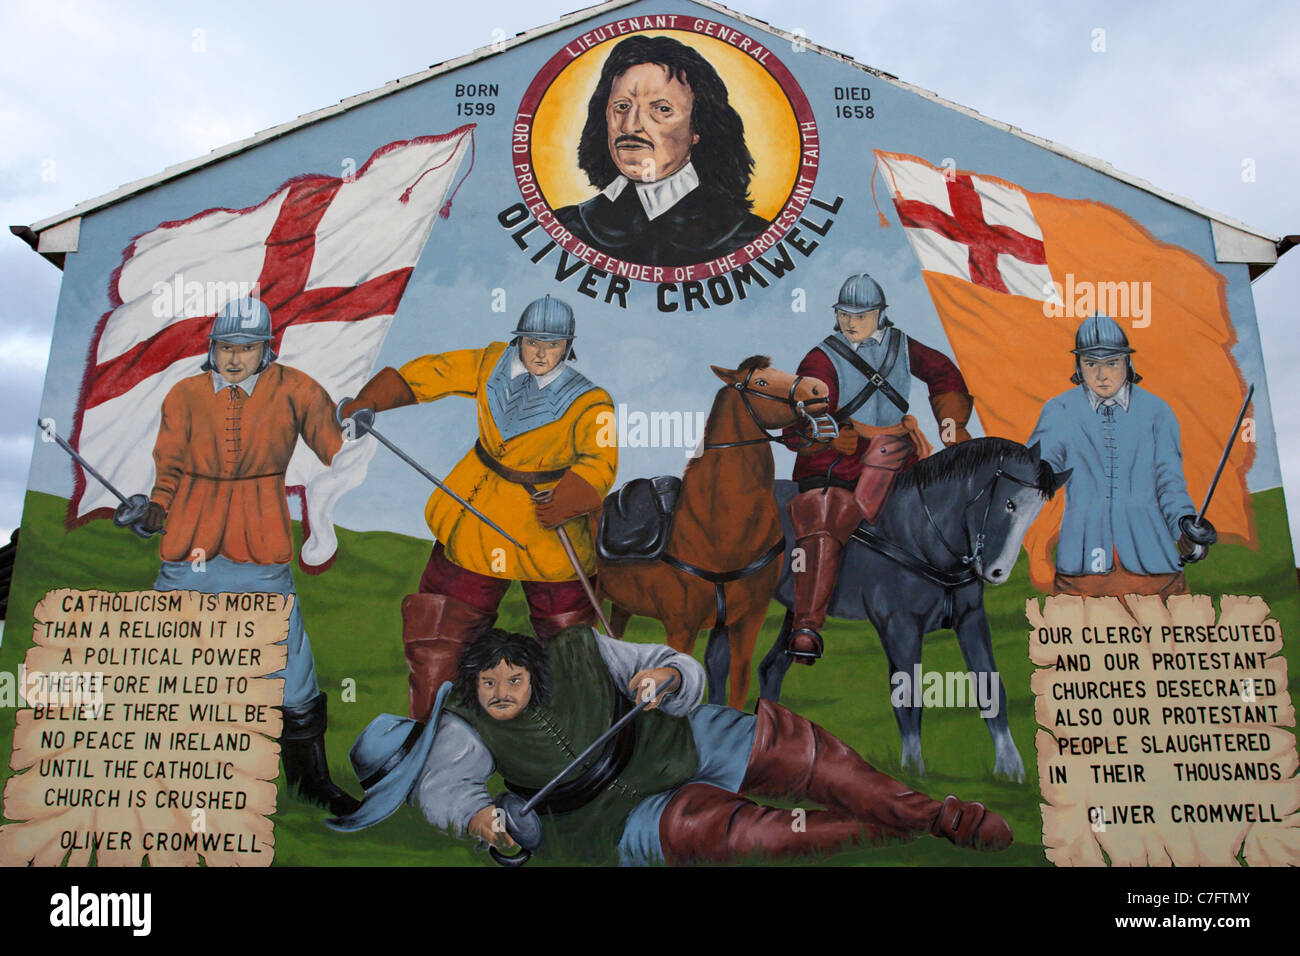 Oliver Cromwell Protestant Loyalist Wall Mural Painting